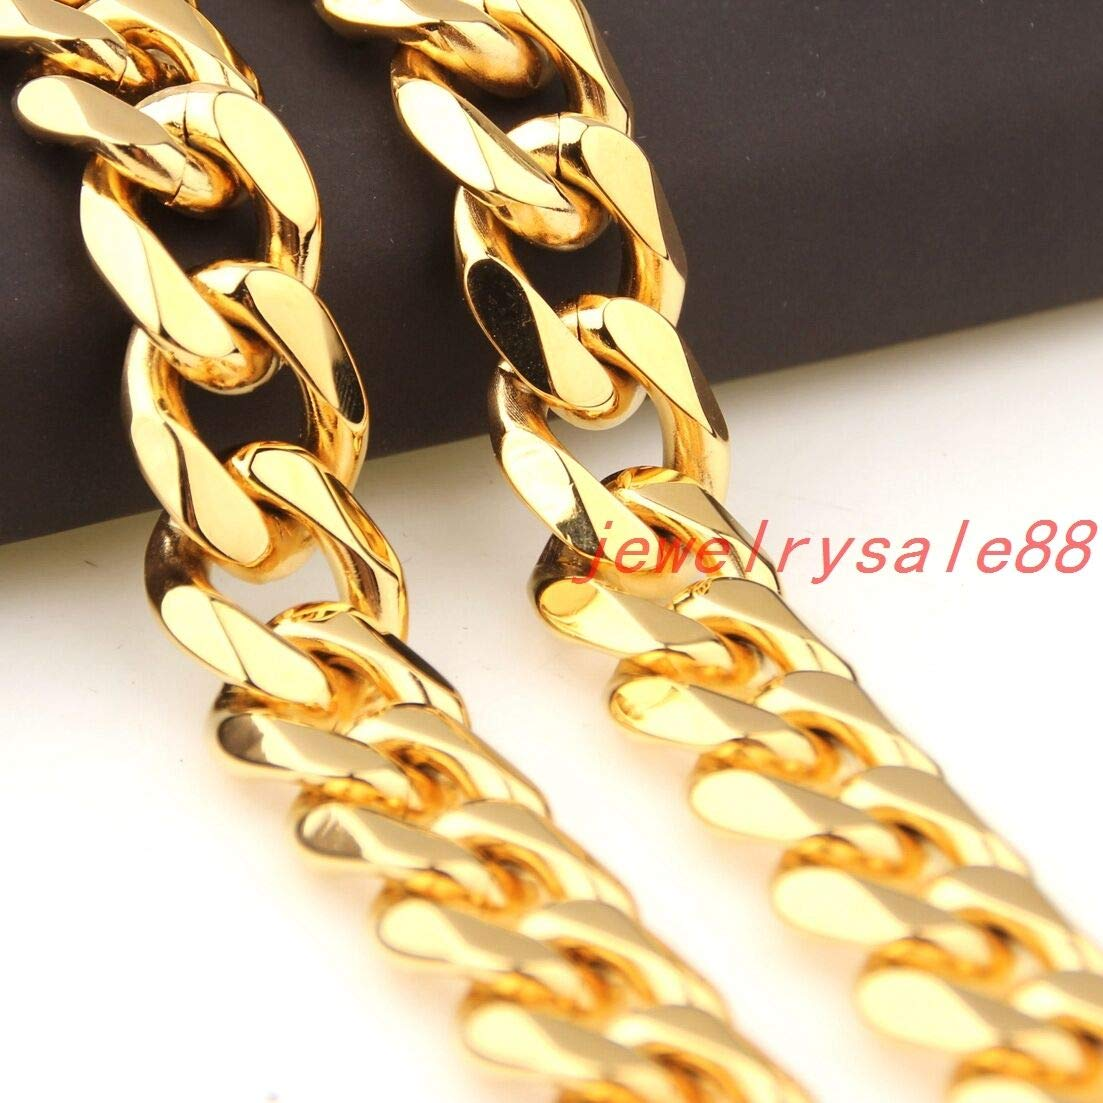 FidgetKute 5~19mm Popular Mens Stainless Steel Curb Link Chain Necklace Gold Tone 7-40 15mm 11inch or28cm